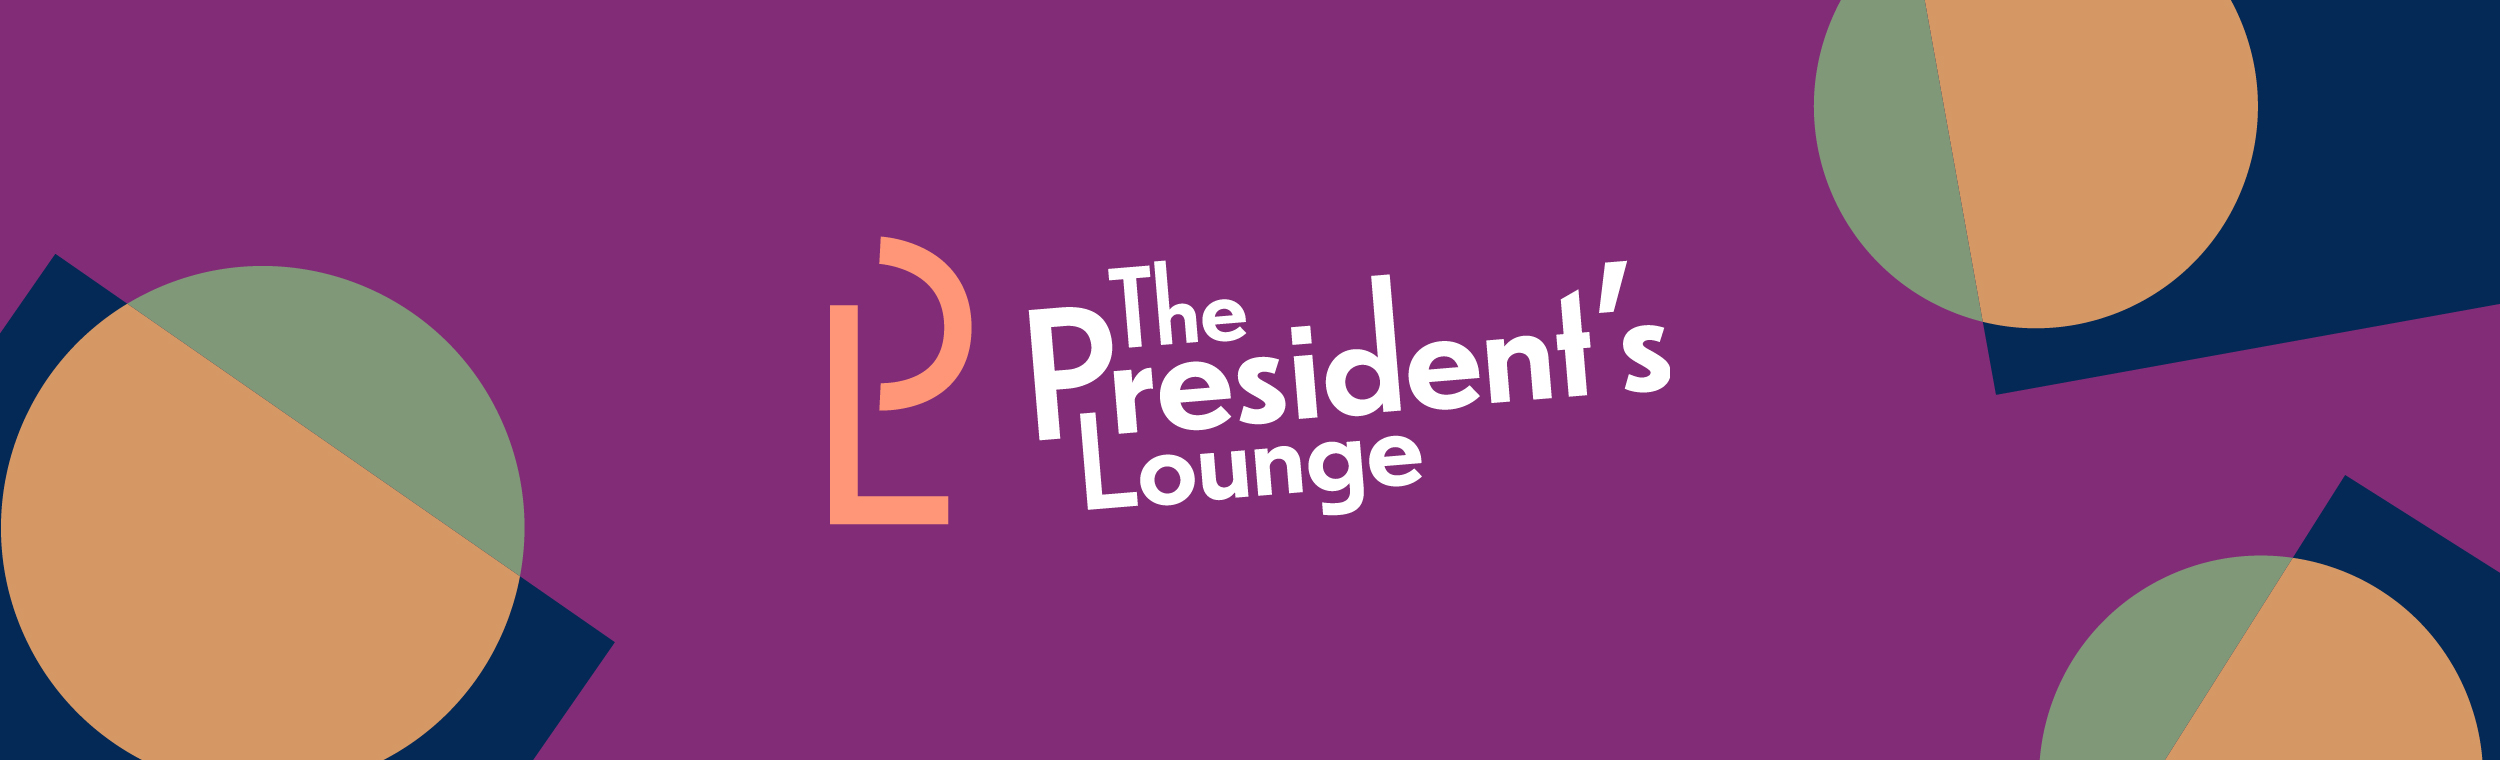 The President's Lounge